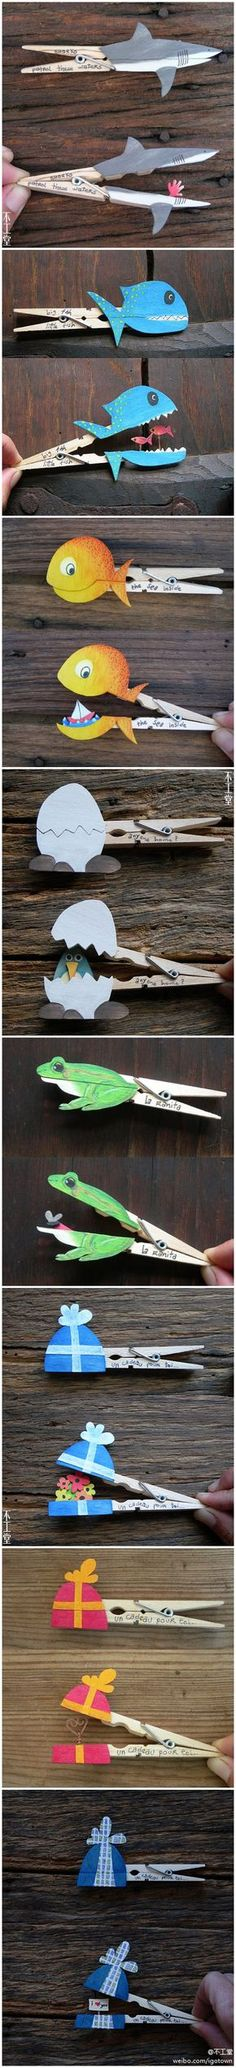 Fun craft for the kids.